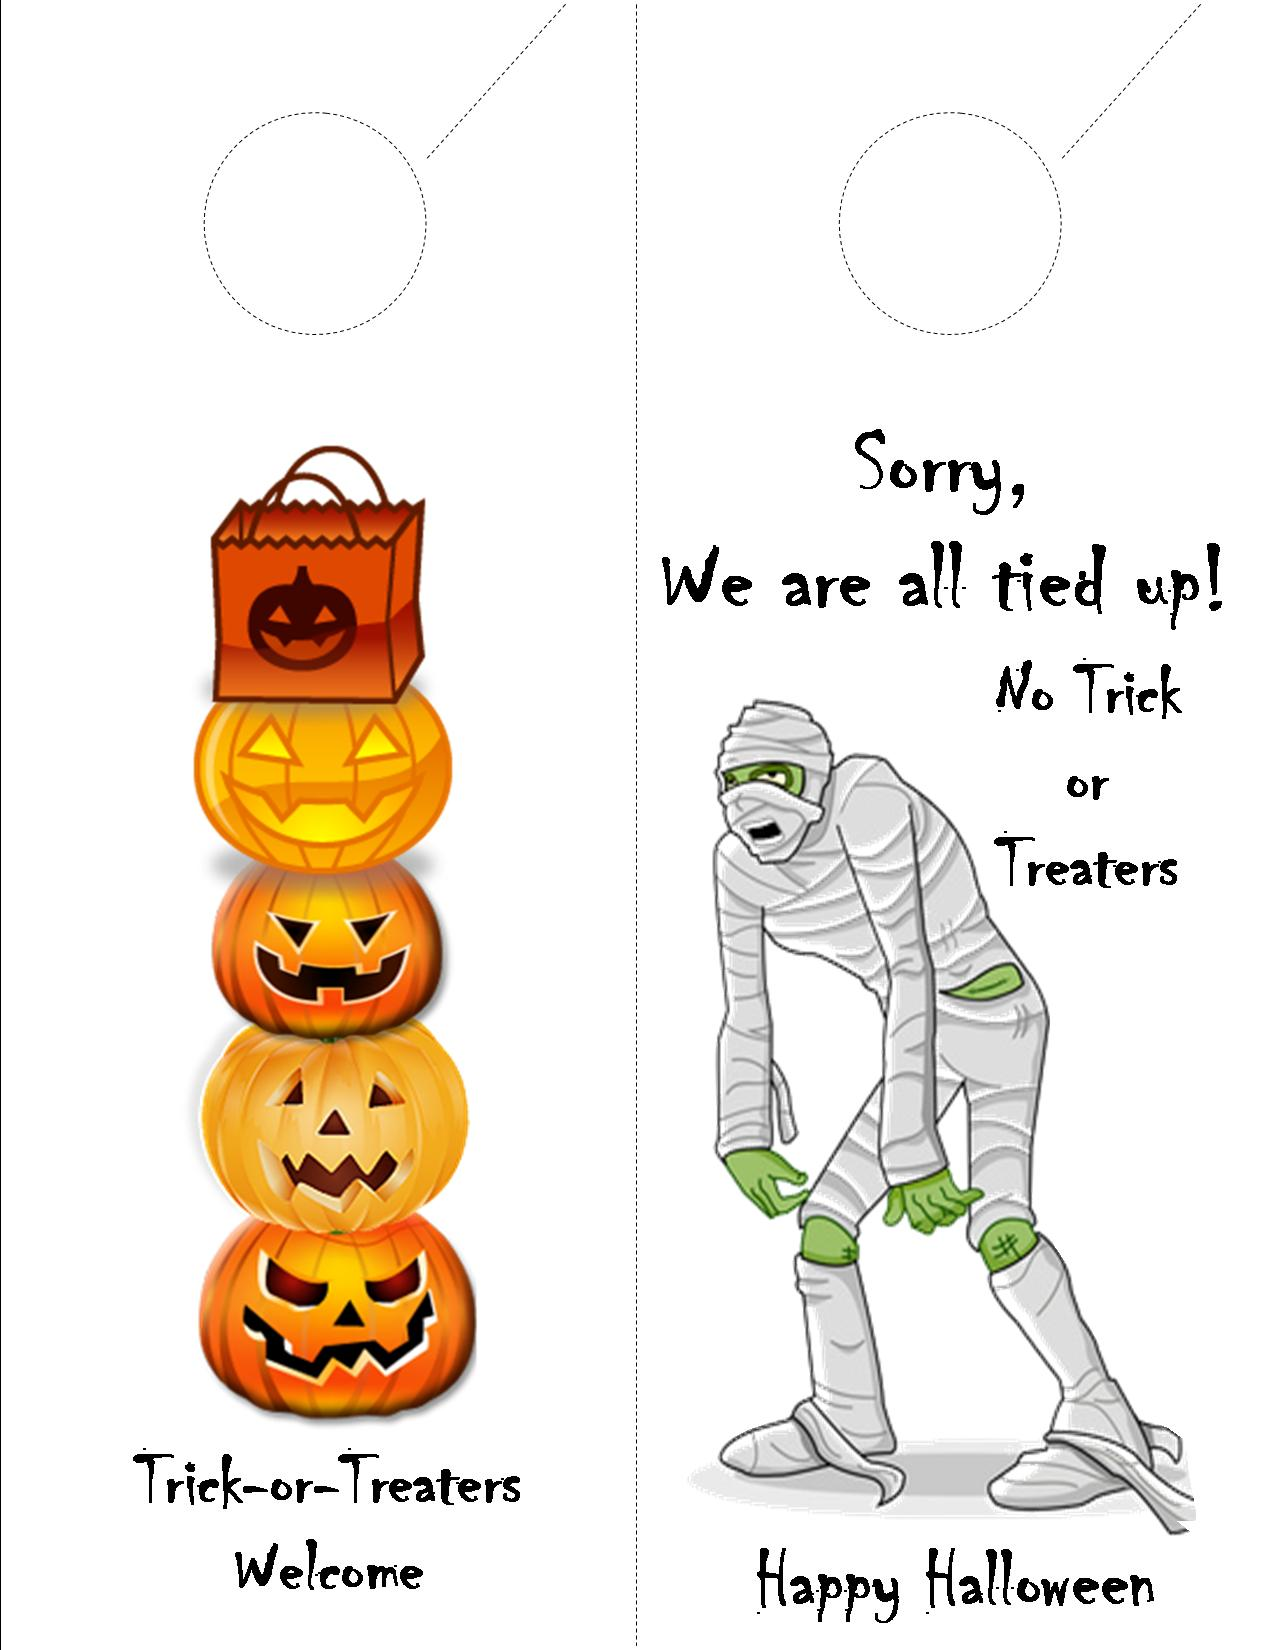 Halloween trick or treaters doorhanger with dotted lines